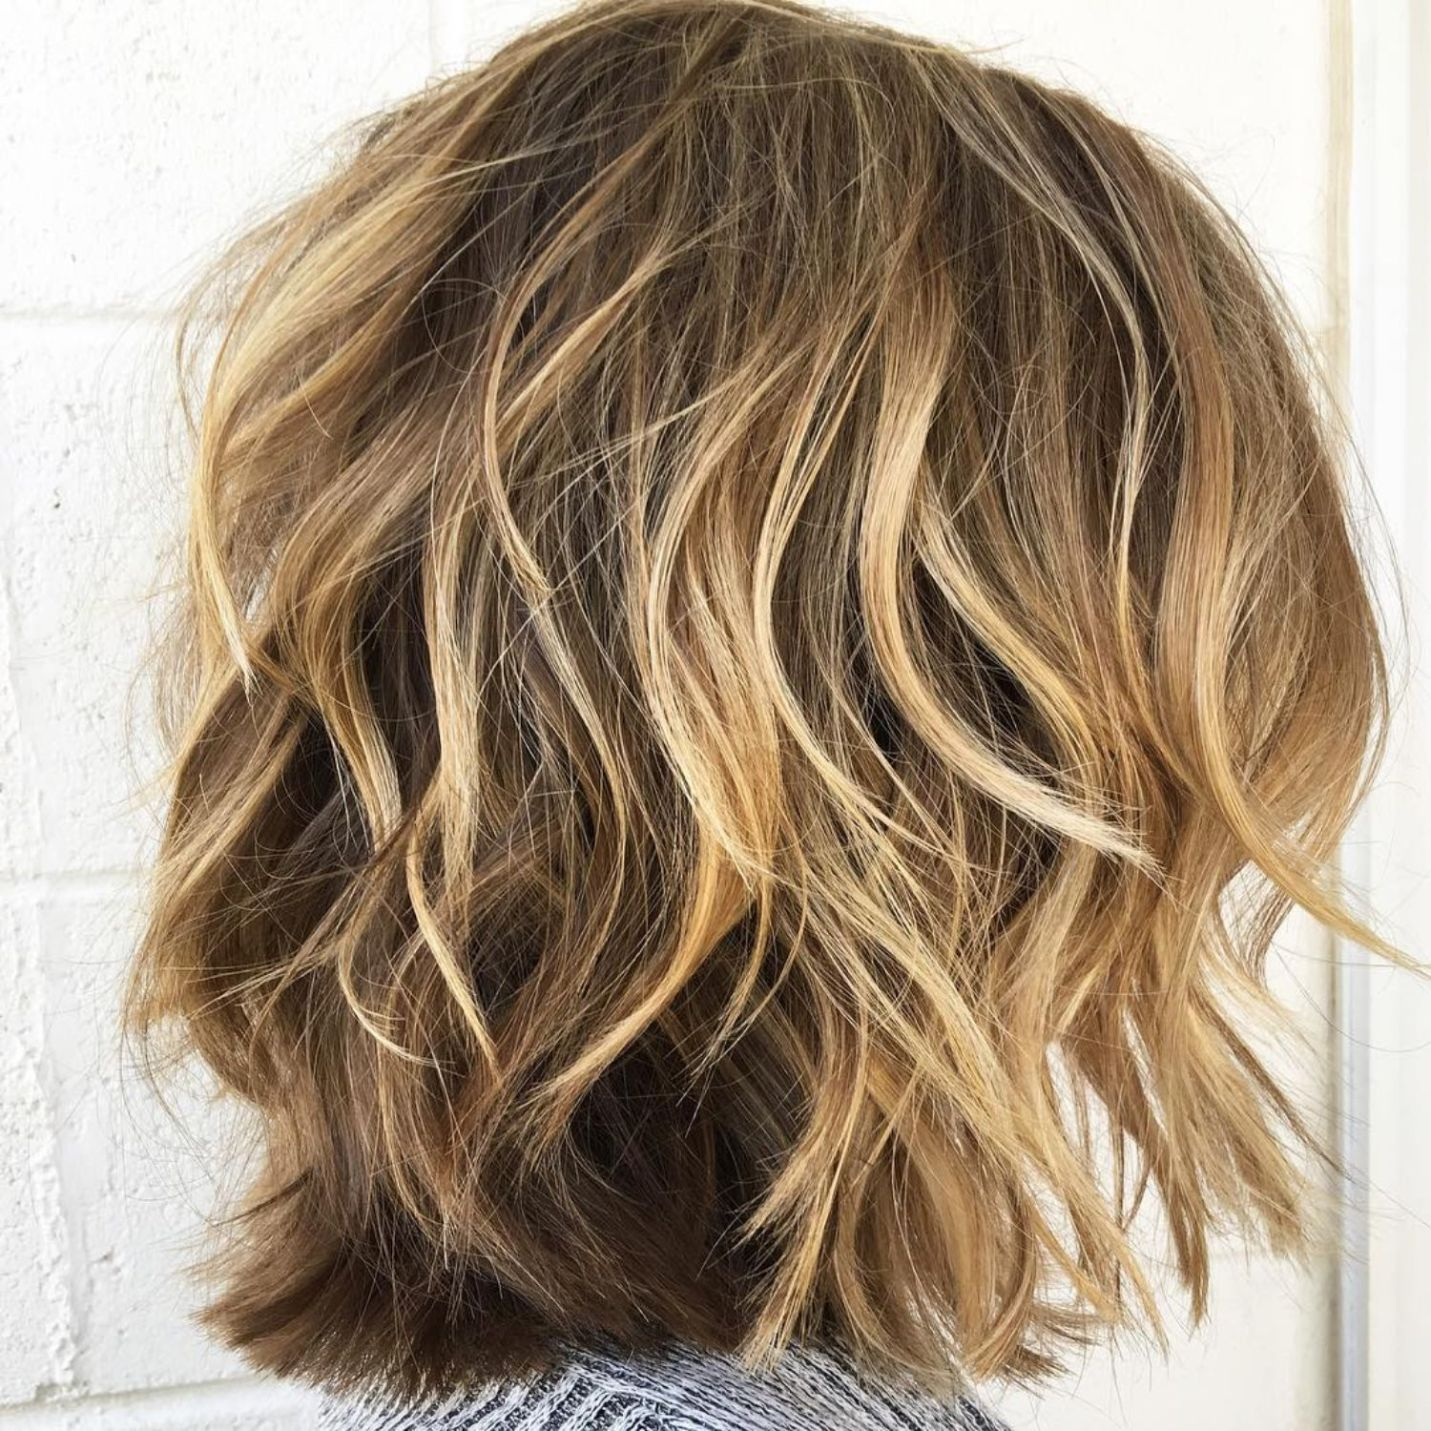 Pin On Just Hair